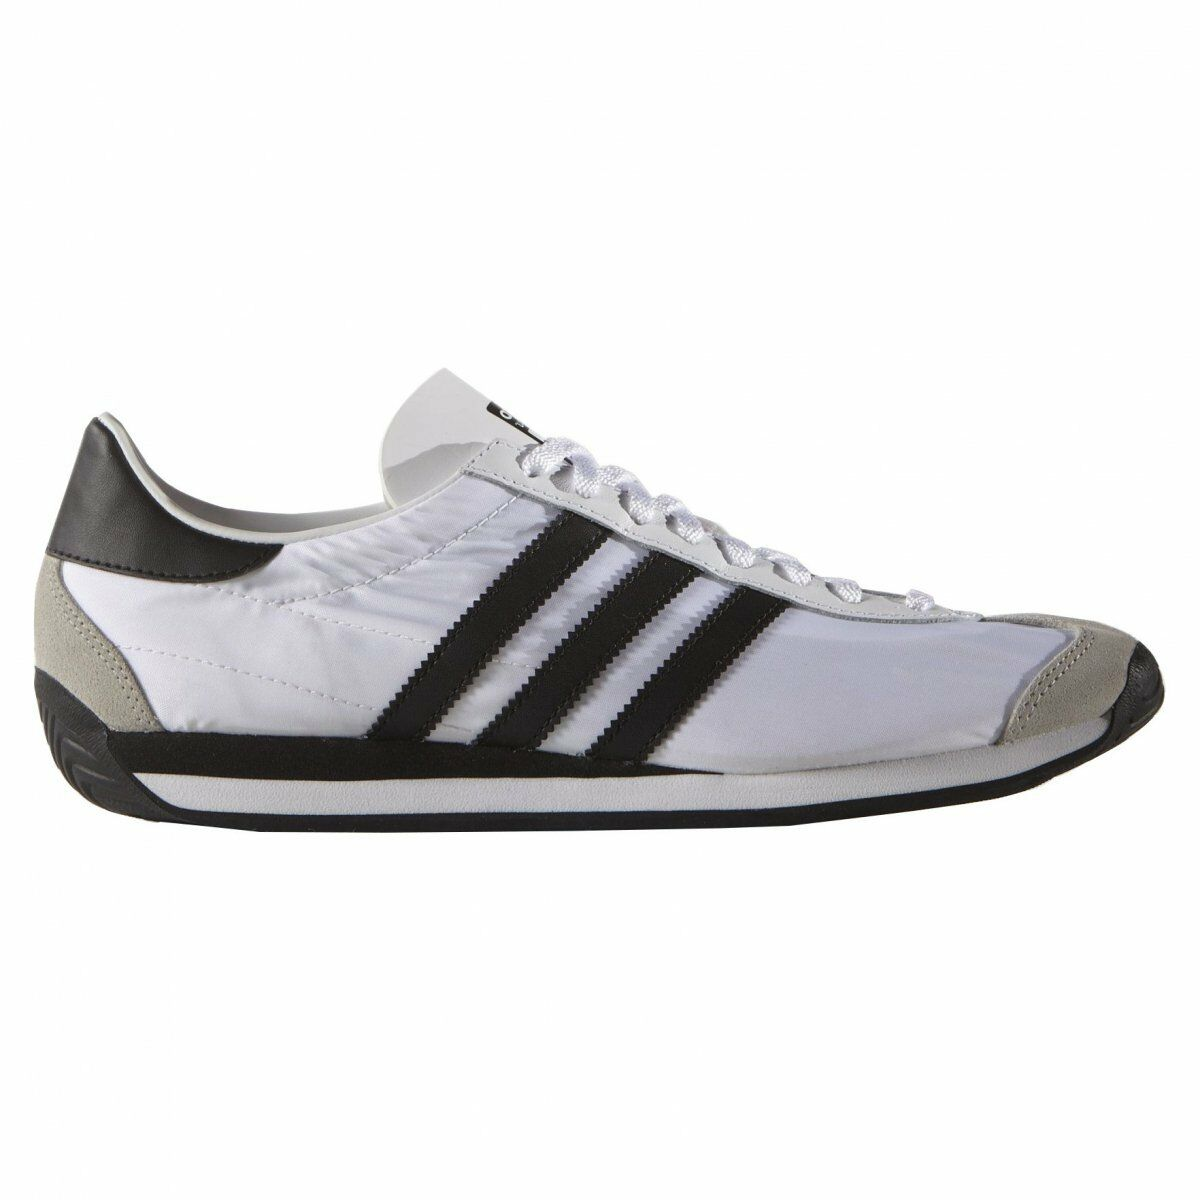 ADIDAS ORIGINALS COUNTRY OG mens shoes sneakers athletic S79106